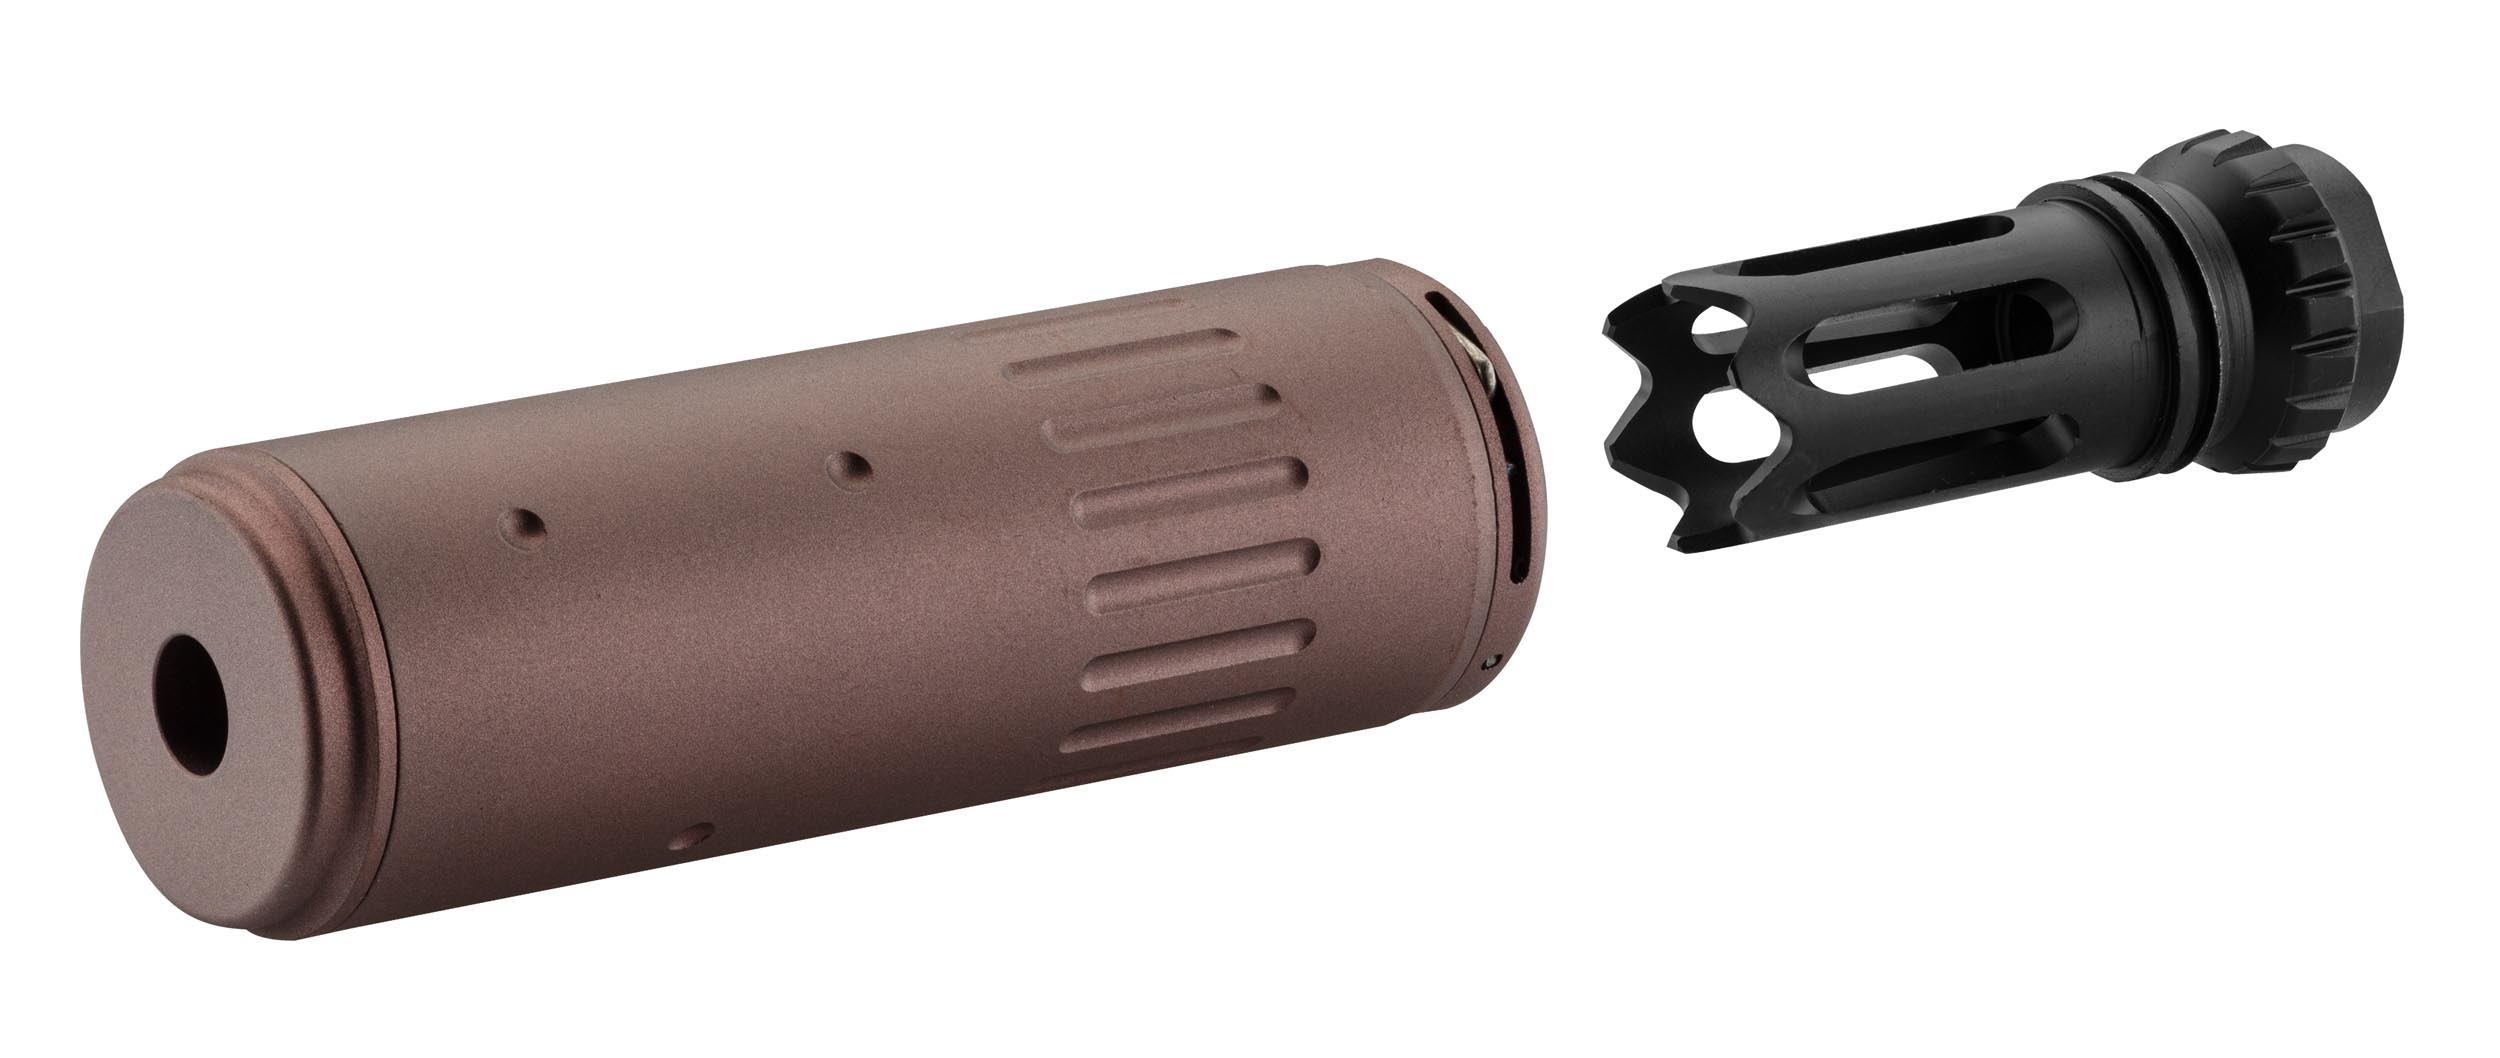 PU02001-2 AAC Style QD Silencer + Flash hider FDE - PU02001